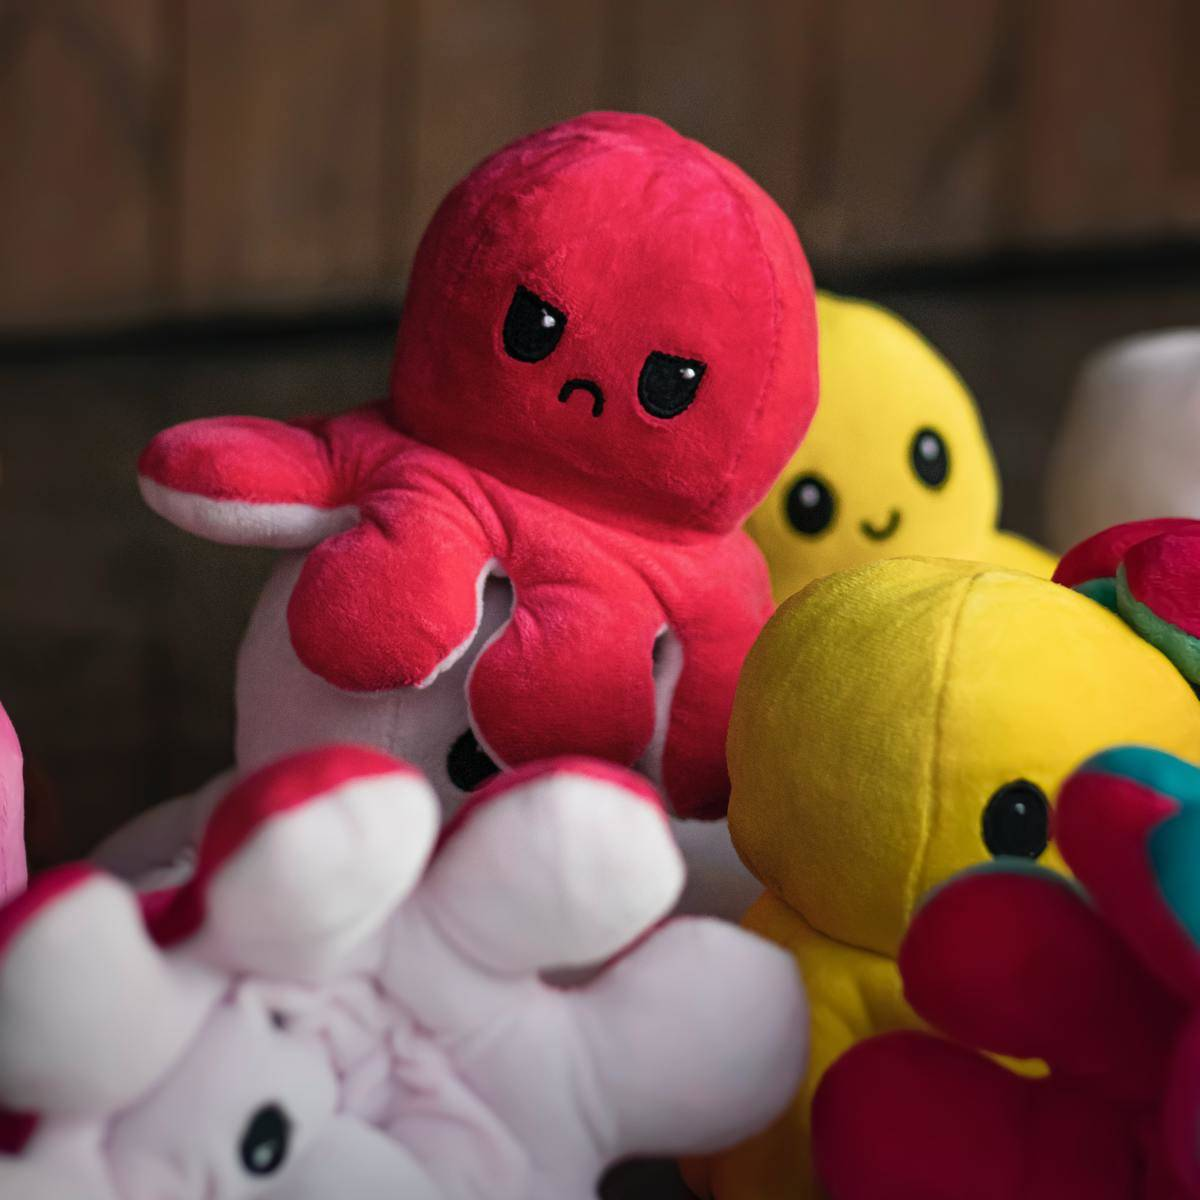 Octopus plushy toys, including a red one with an angry face